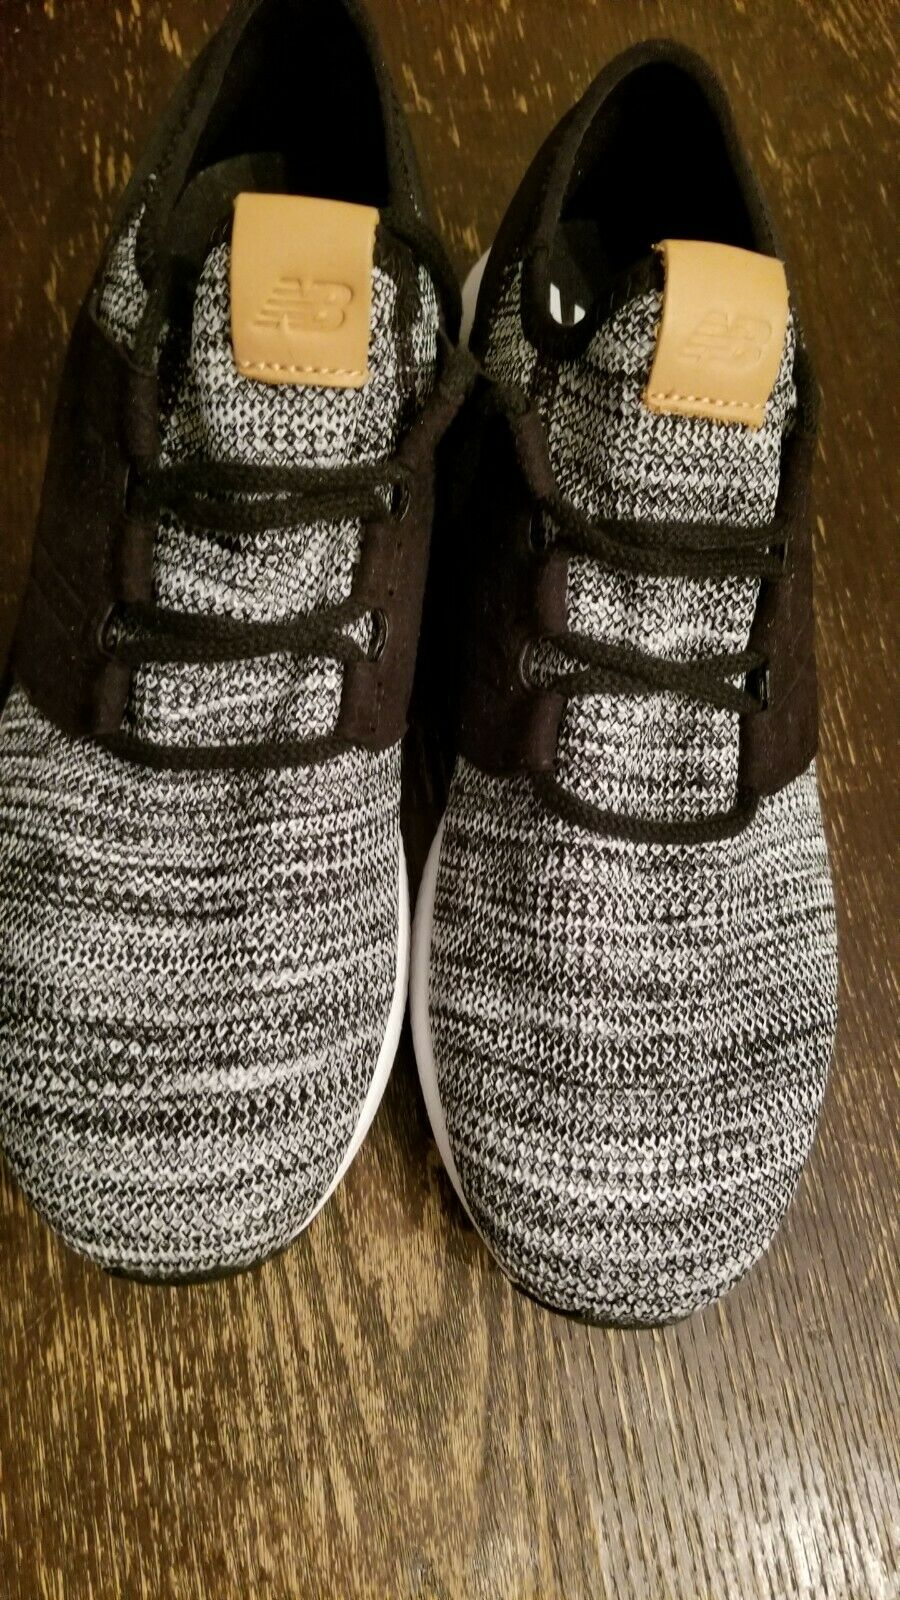 New Balance Fresh Foam Cruz v2 Knit Men's shoes Comfy Slip-on Sneakers 10 D.